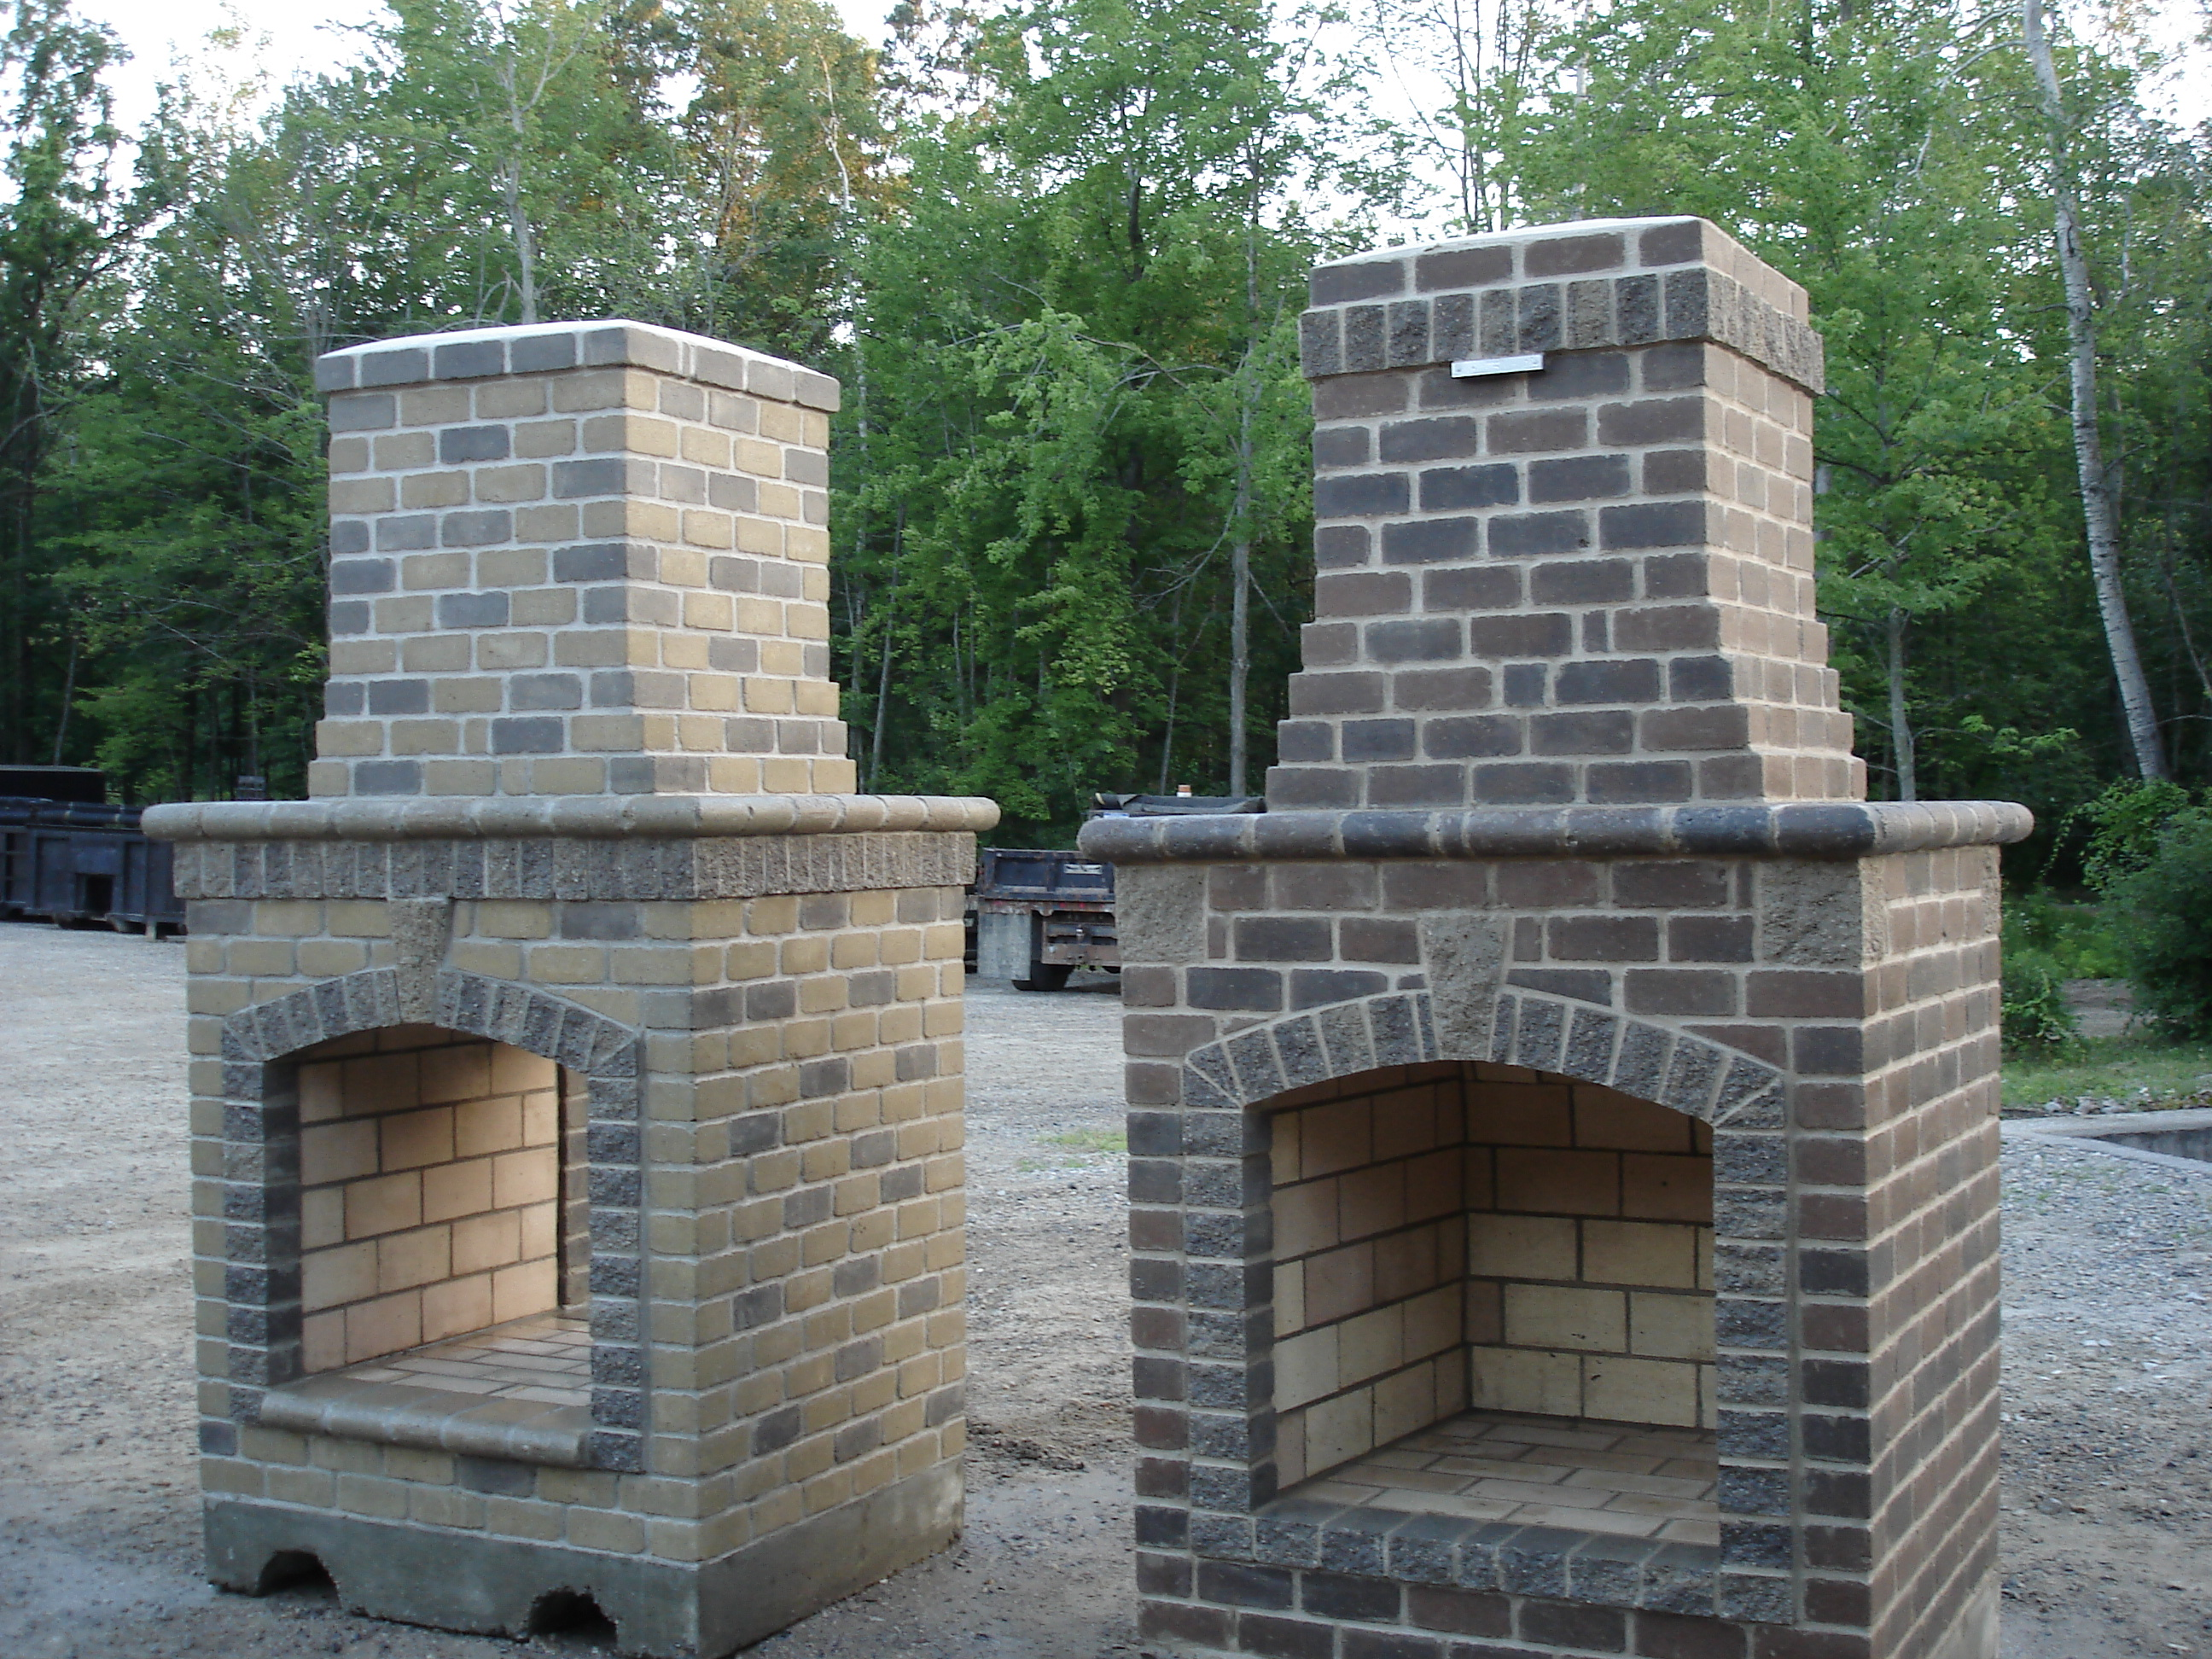 outdoors fireplace kits. Outside electric fireplace pictures kits uk  Deck design and Ideas